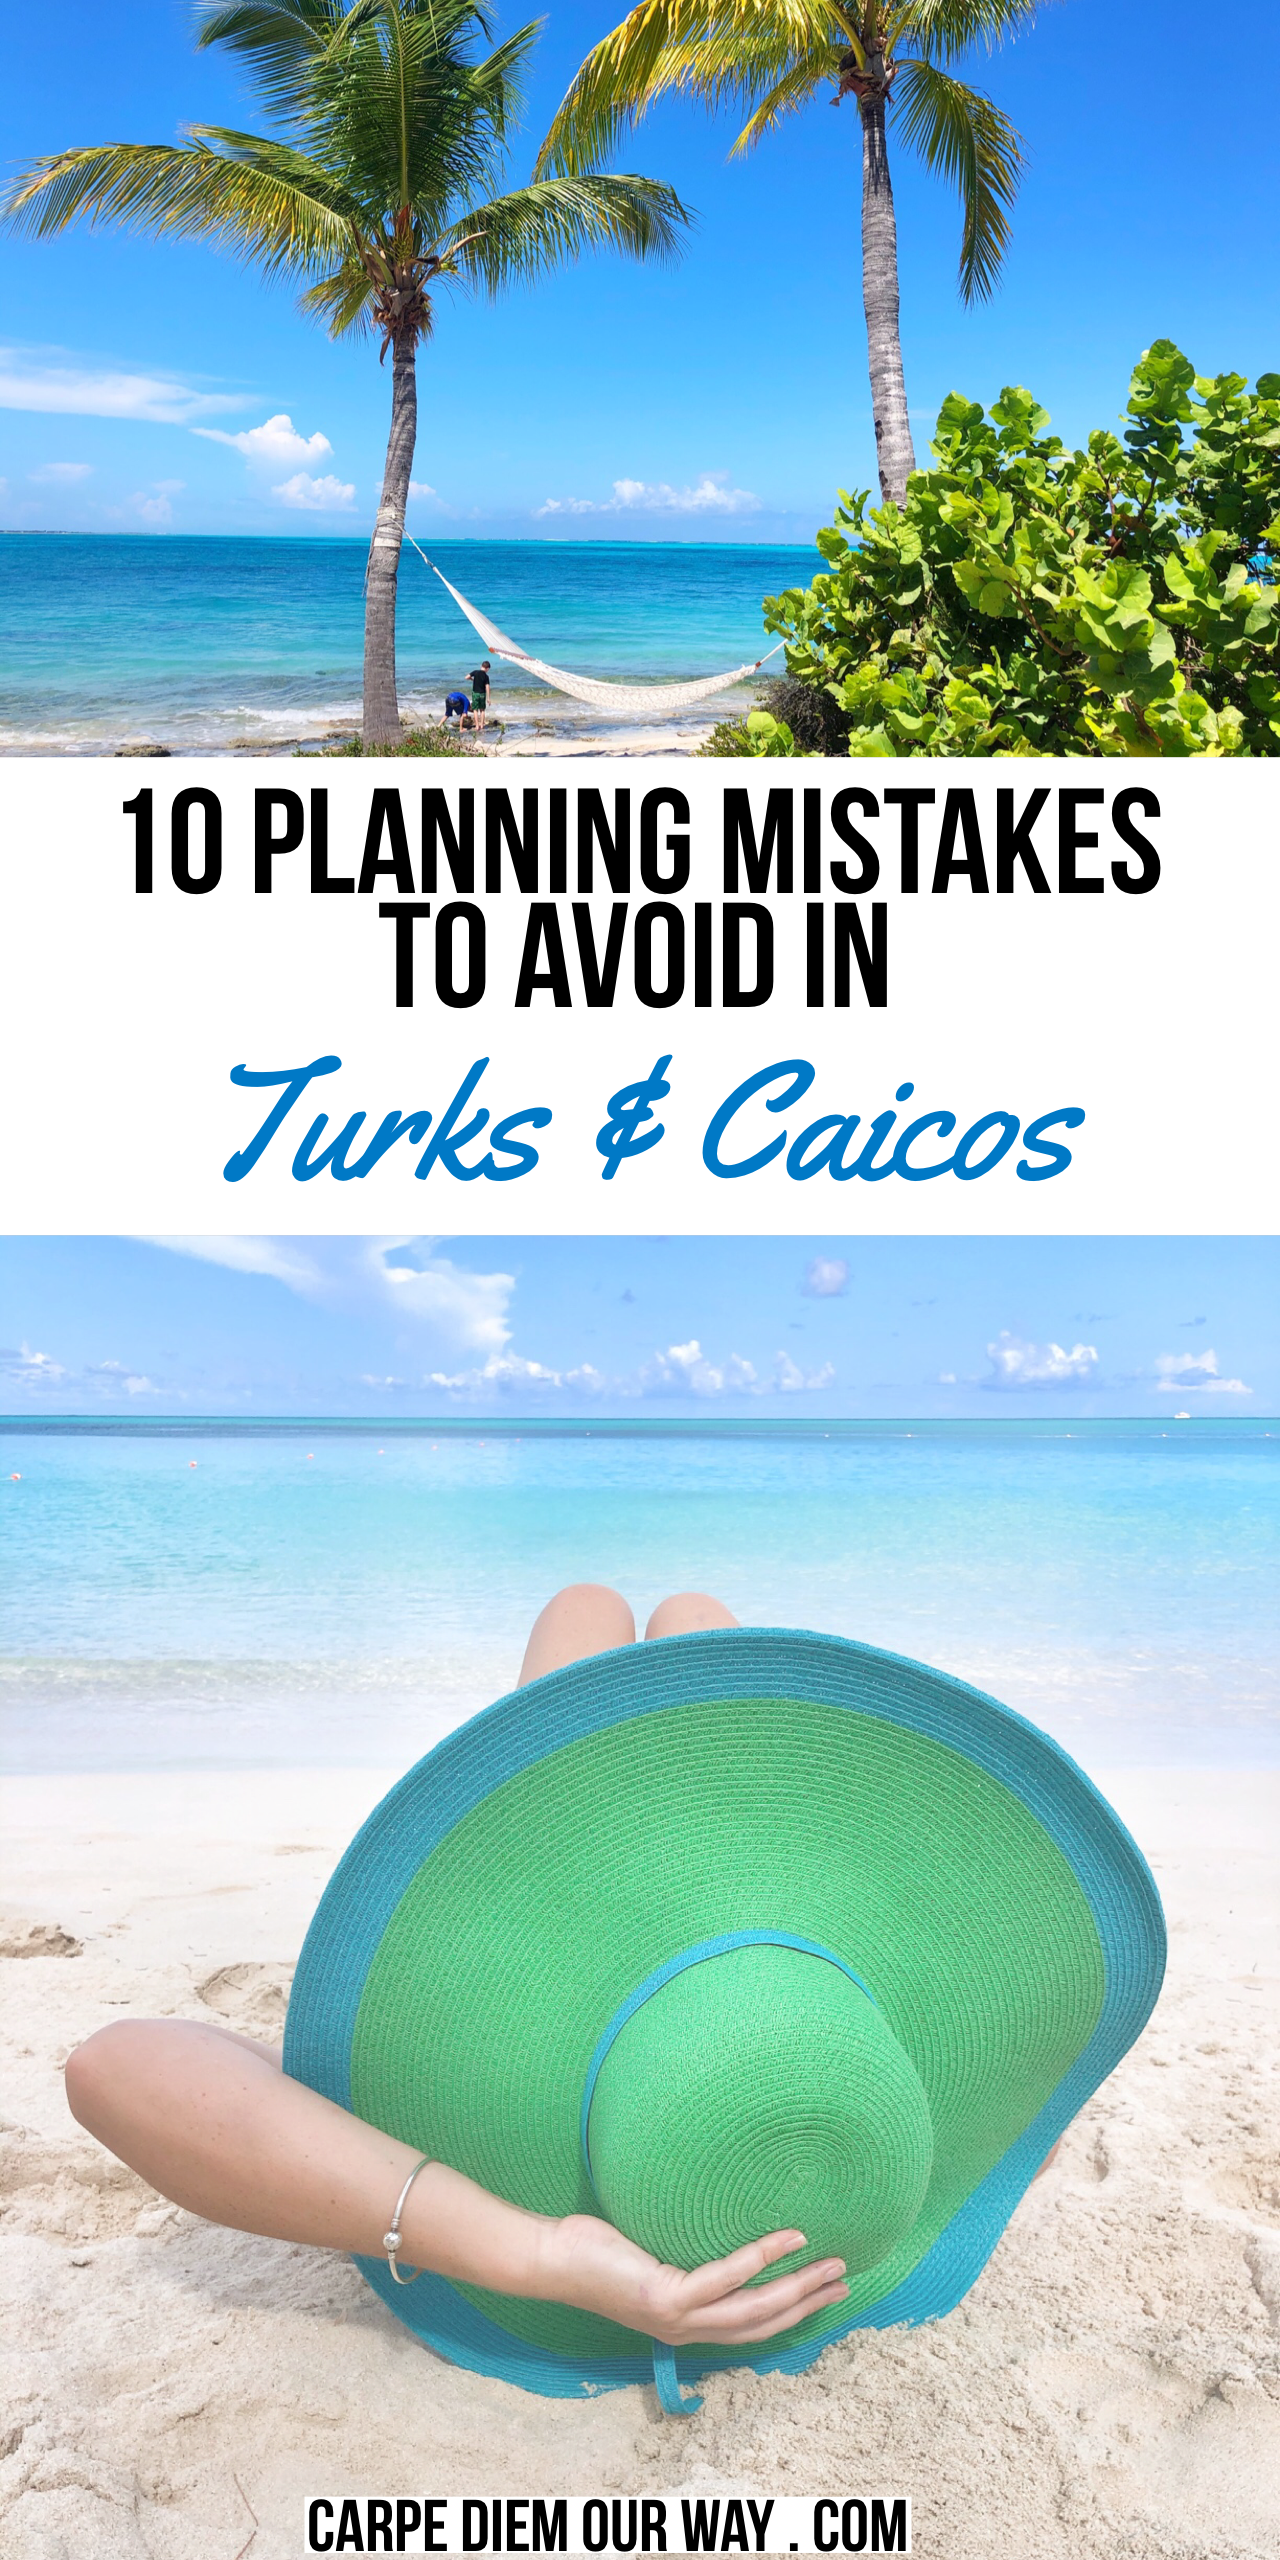 Trip to Turks and Caicos Islands